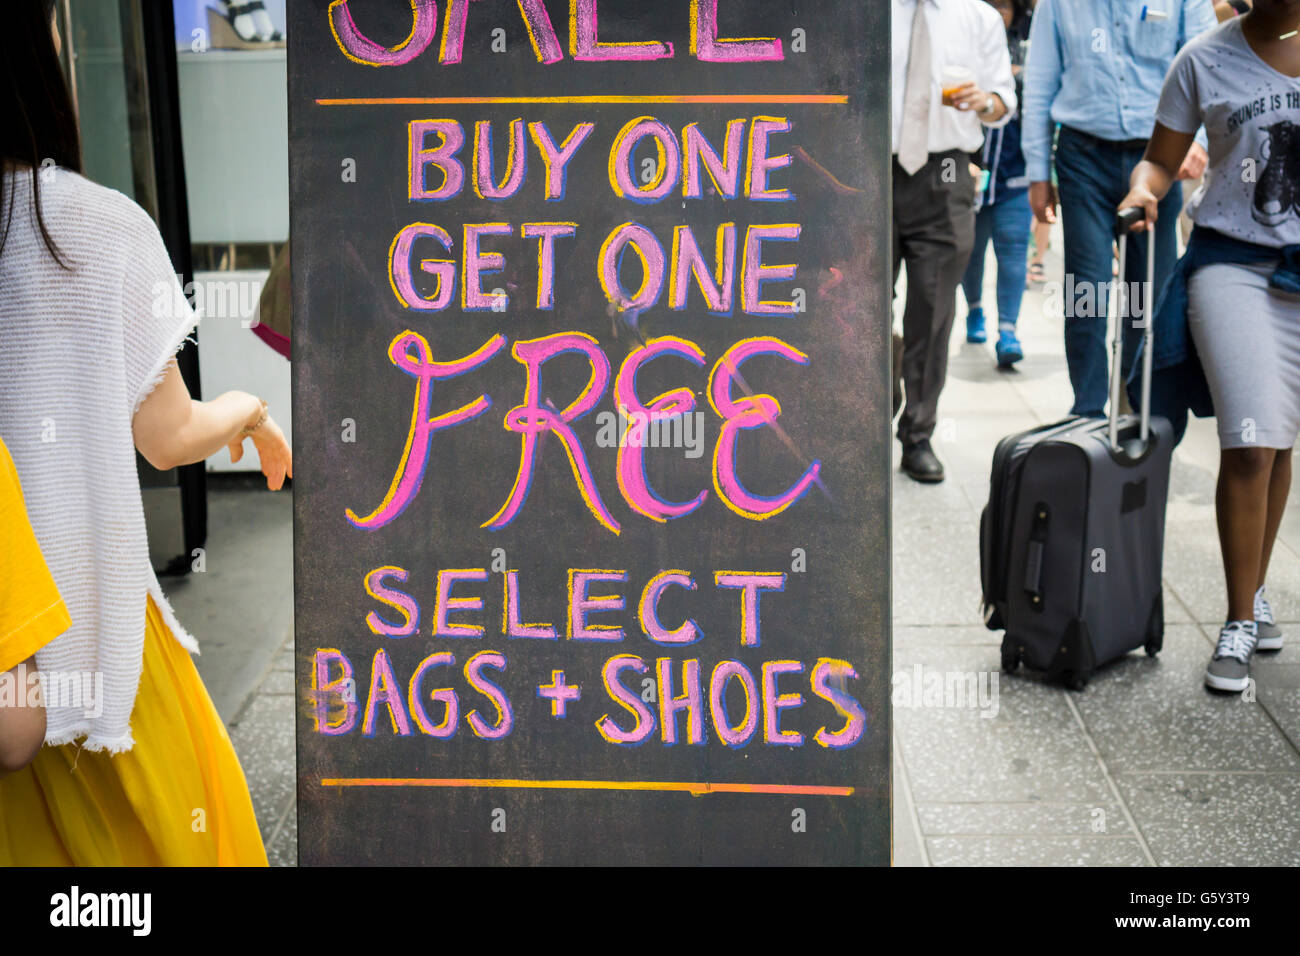 a buy one get one promotion advertised outside of a clothing a buy one get one promotion advertised outside of a clothing store in new york on friday 17 2016 © richard b levine